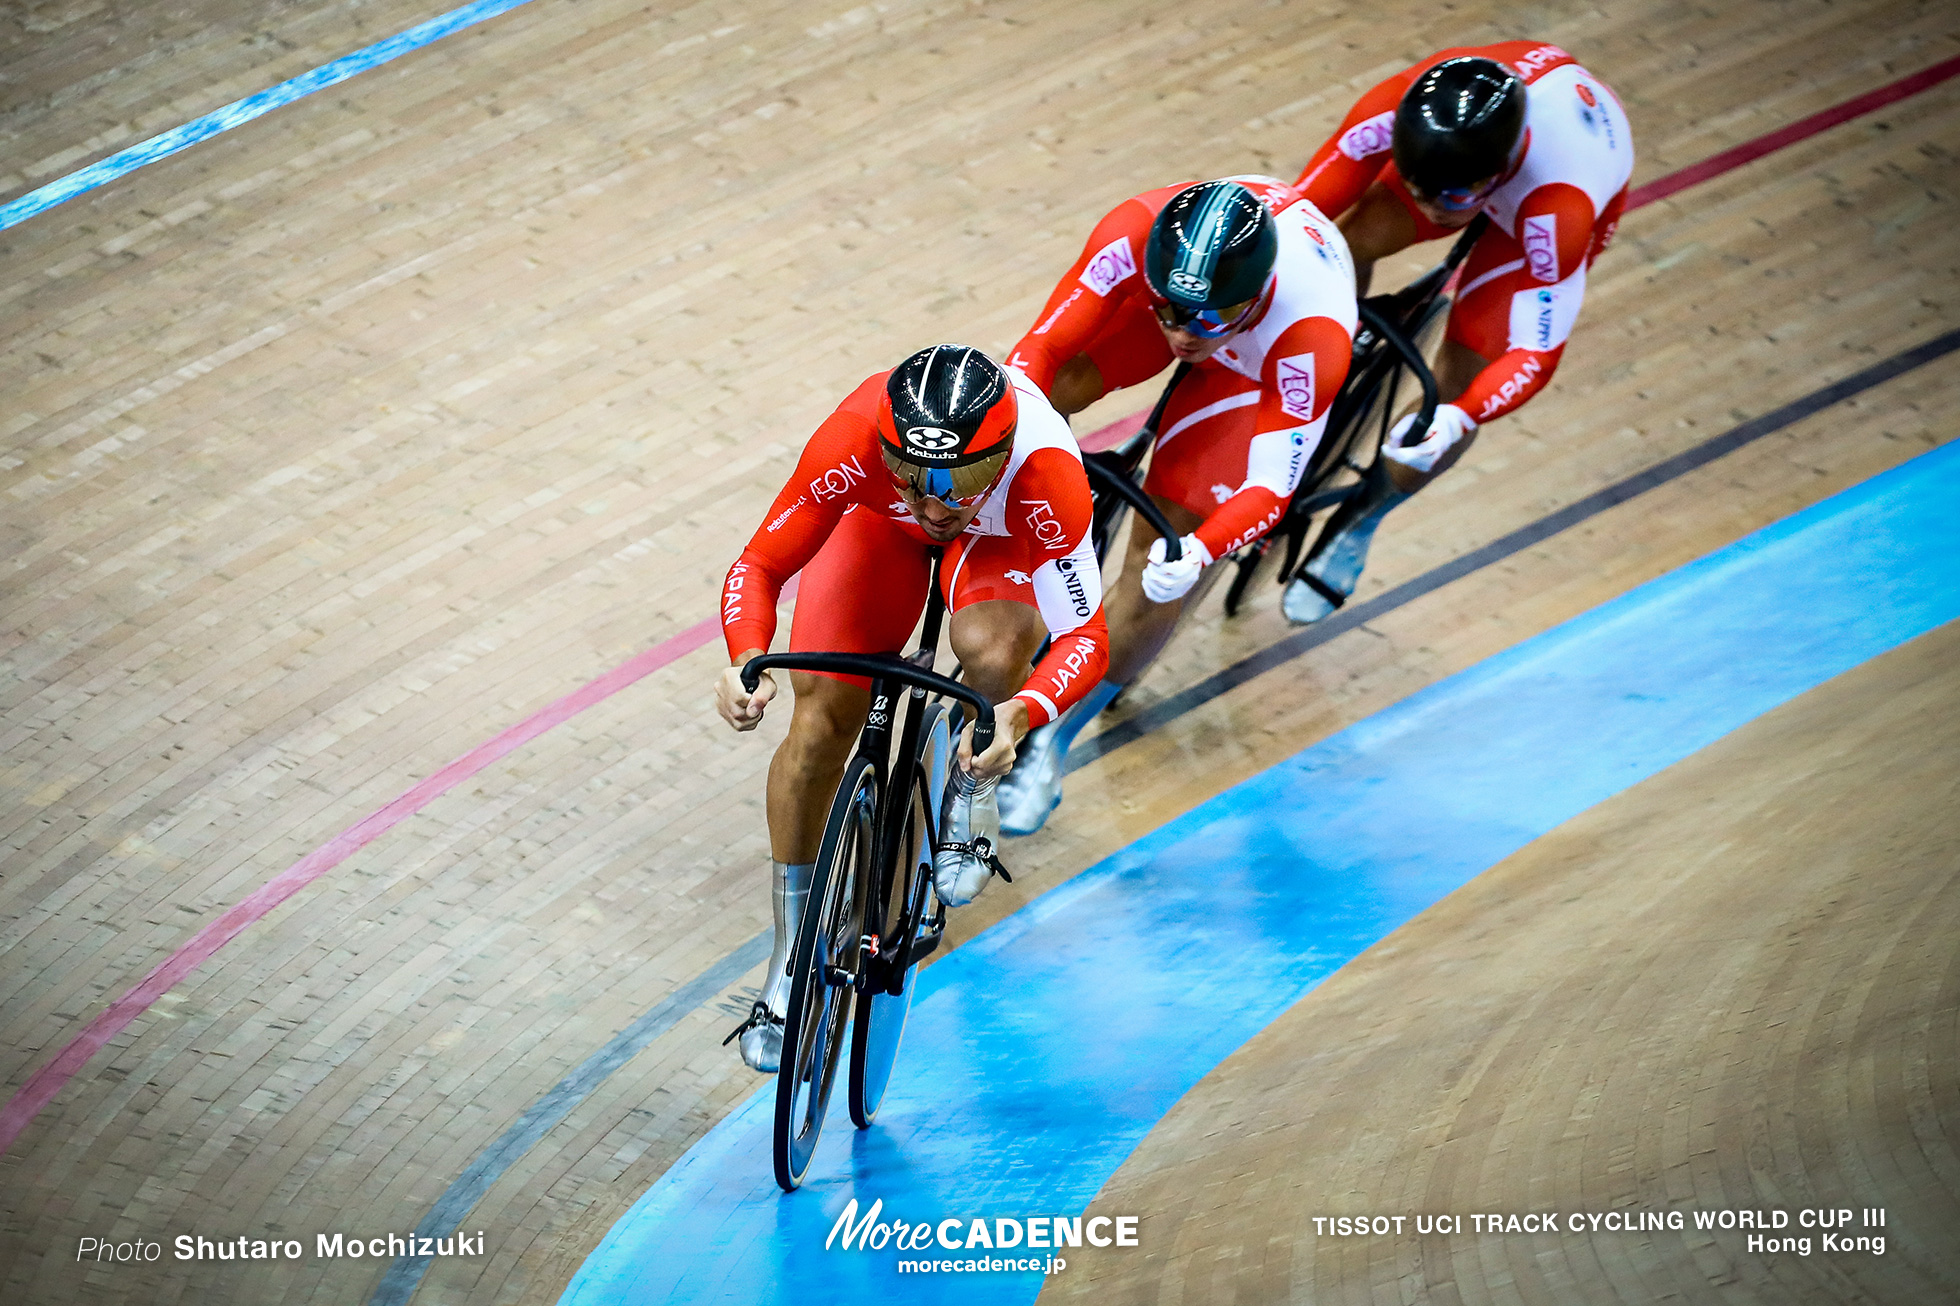 Qualifying / Men's Team Sprint / TISSOT UCI TRACK CYCLING WORLD CUP III, Hong Kong